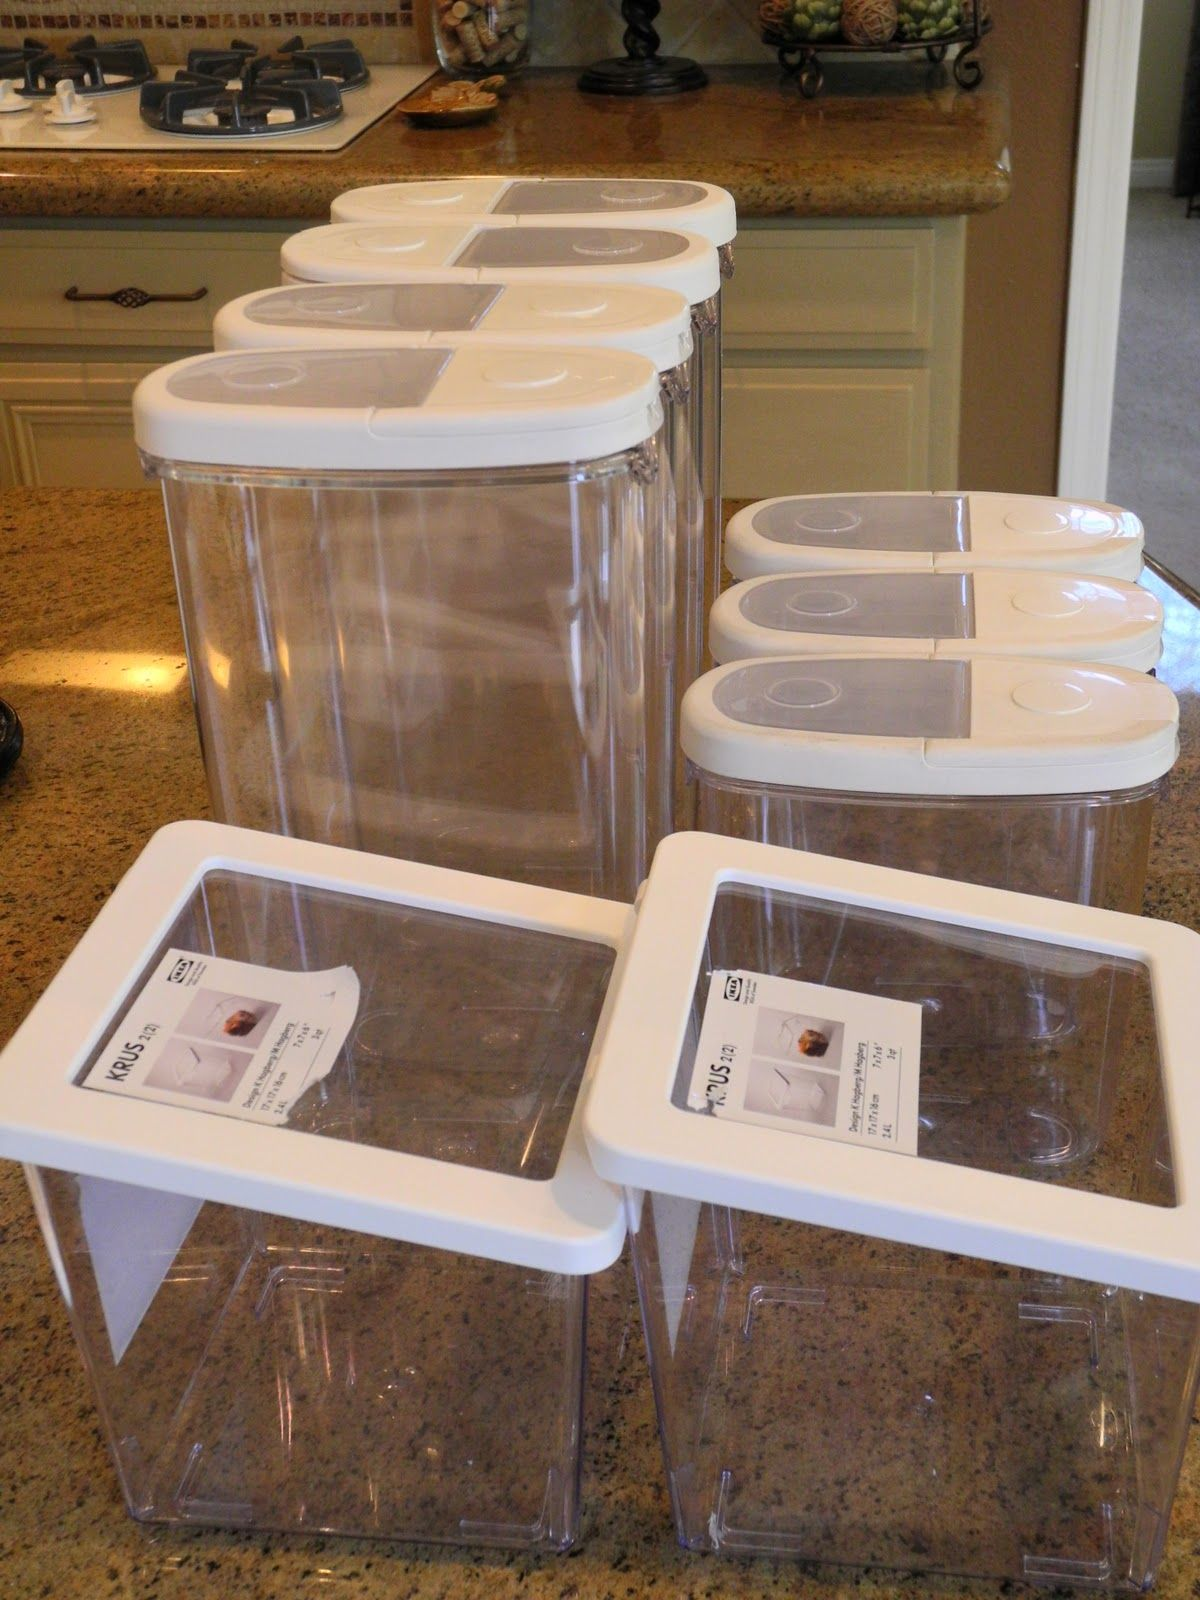 Kitchen Containers Rustic Outdoor Bins For Organizing Pantry Bpa Free Ikea